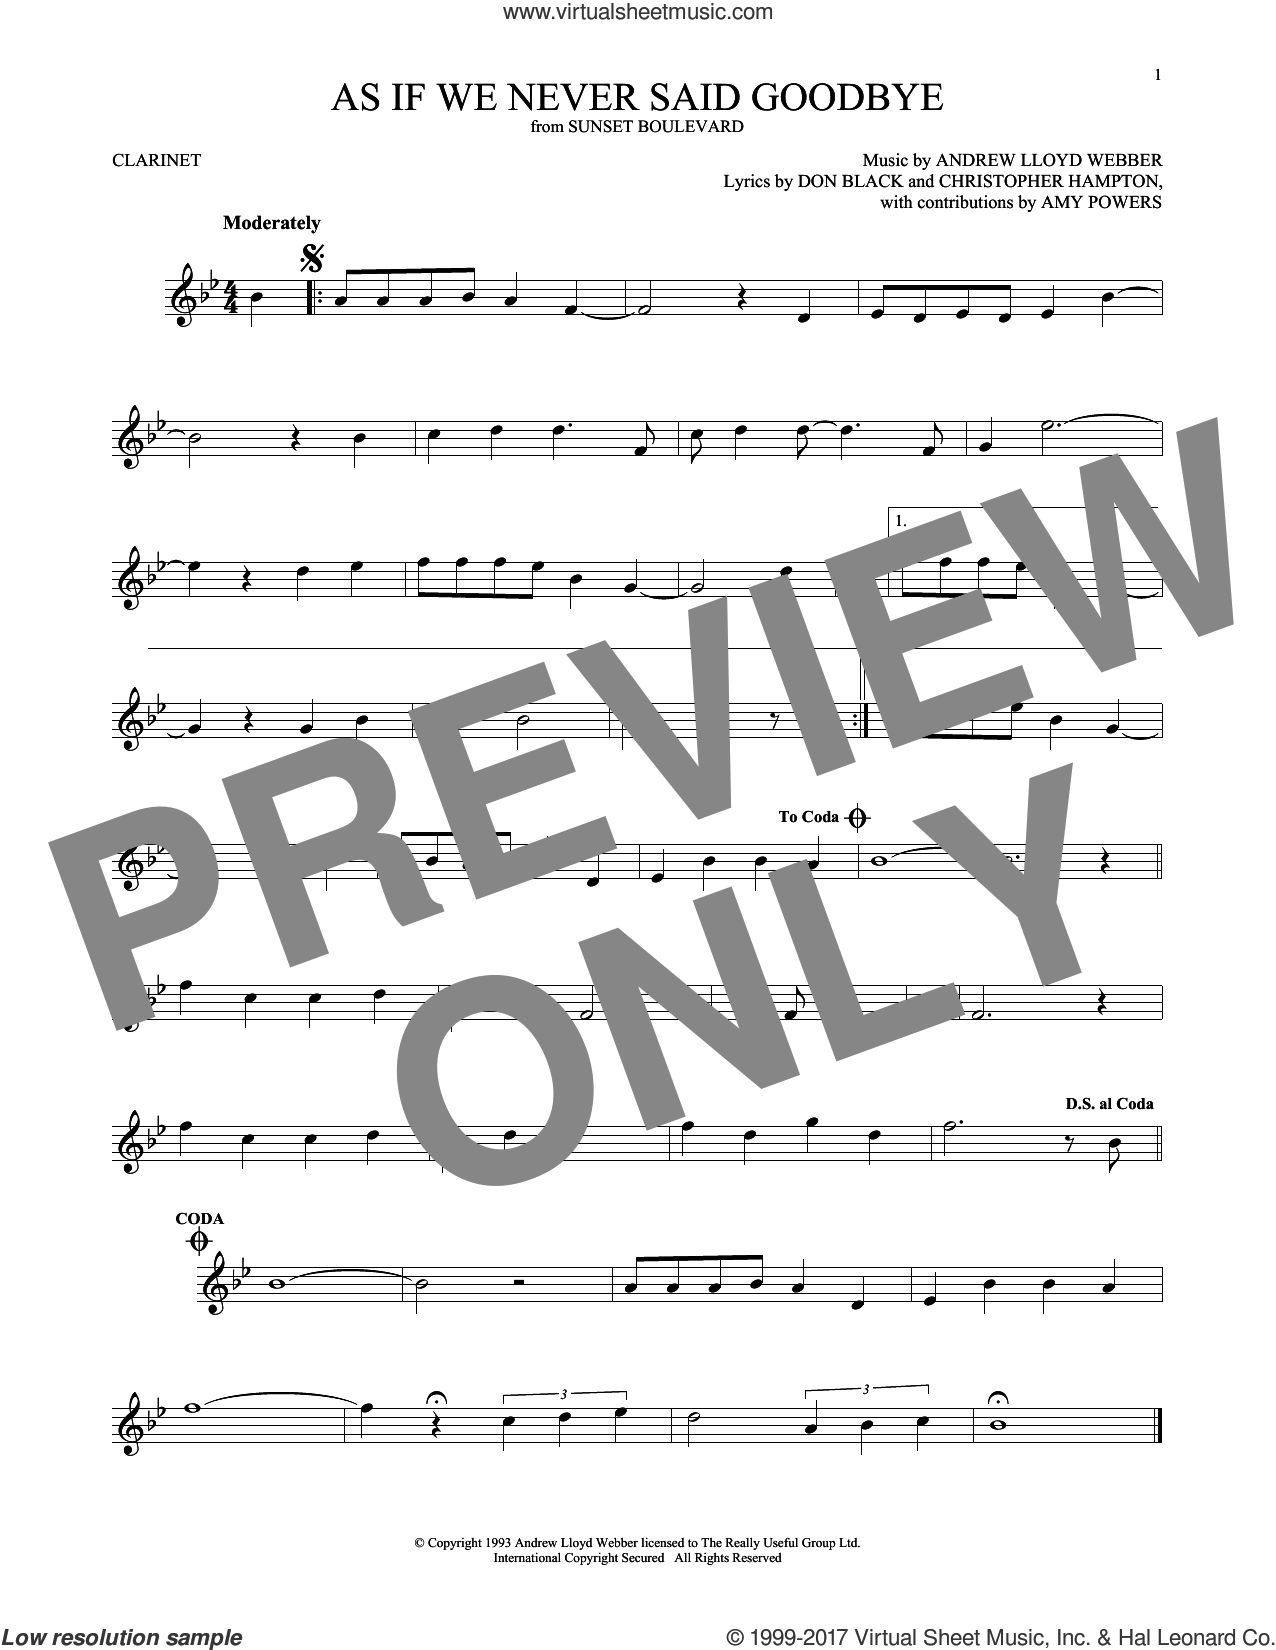 As If We Never Said Goodbye sheet music for clarinet solo by Andrew Lloyd Webber, Christopher Hampton and Don Black, intermediate skill level